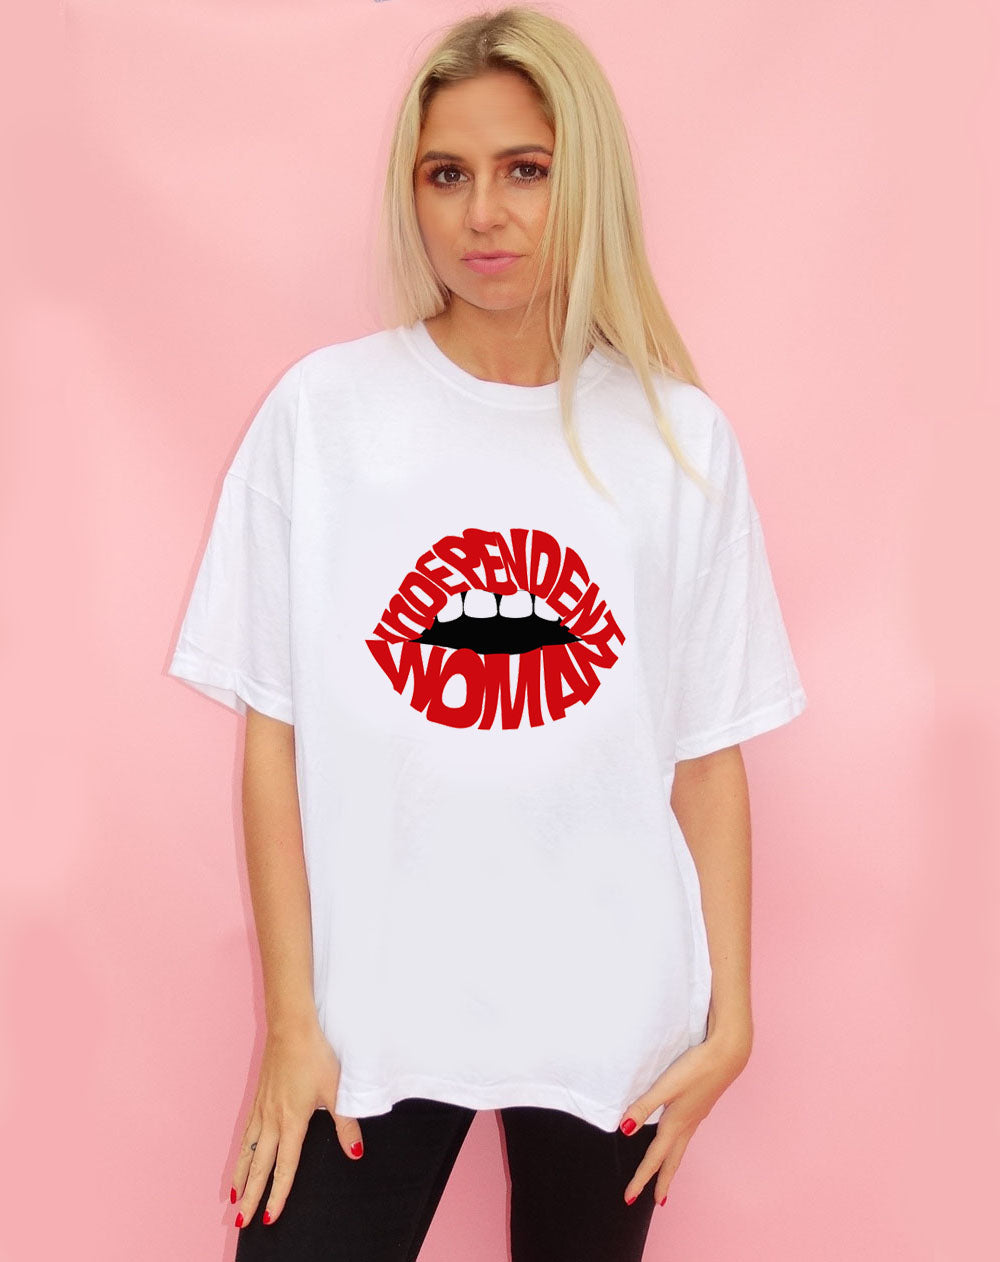 Independent Red Lip Graphic T-shirt in White